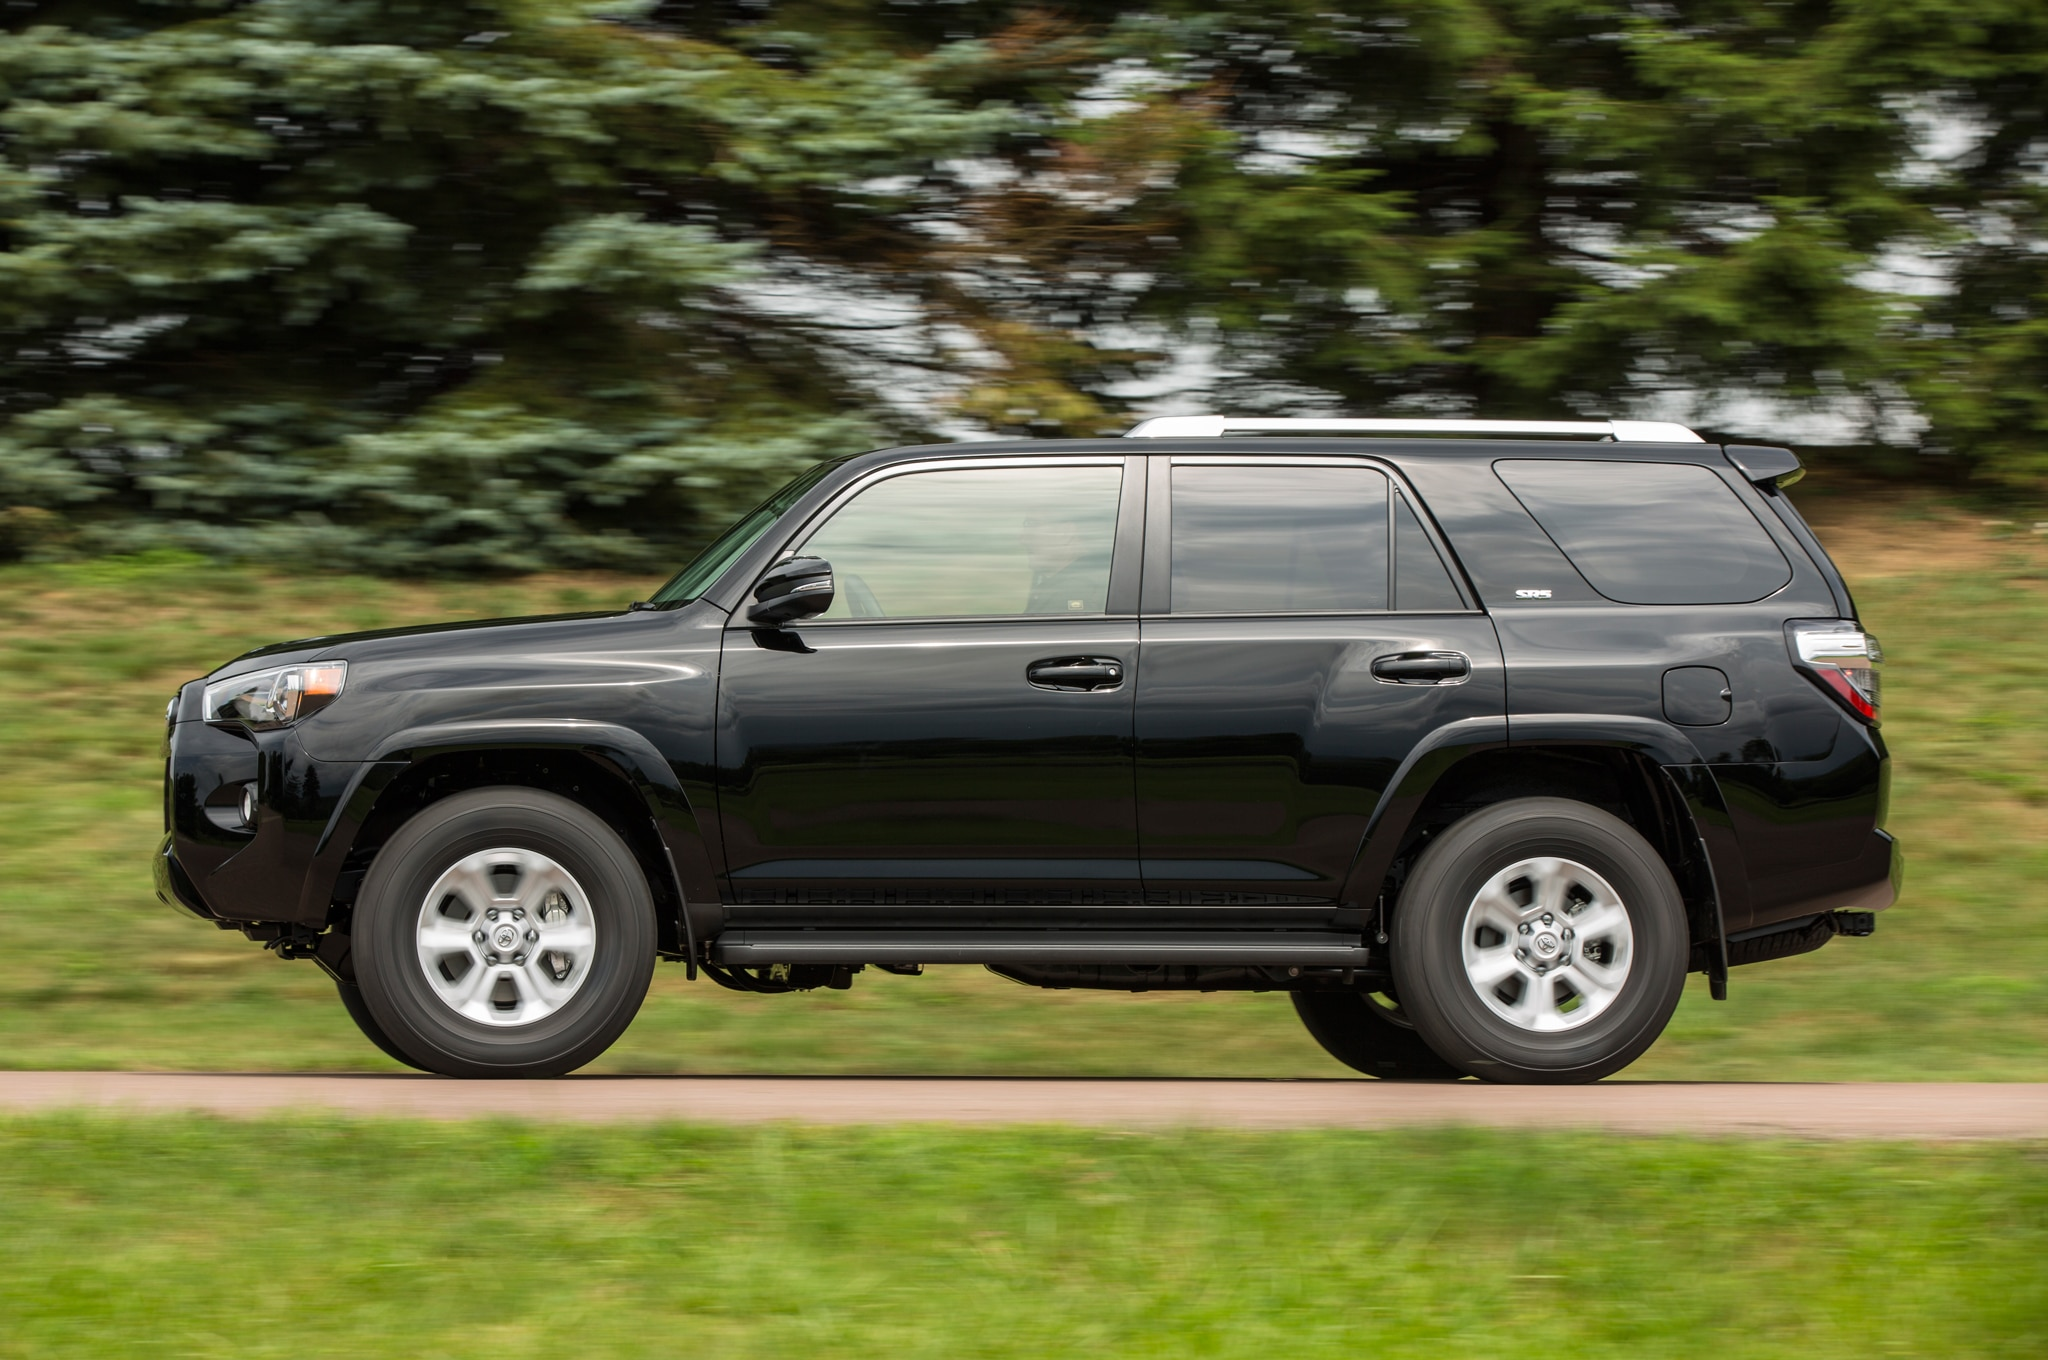 2014 Toyota 4runner SR5 side profile in motion